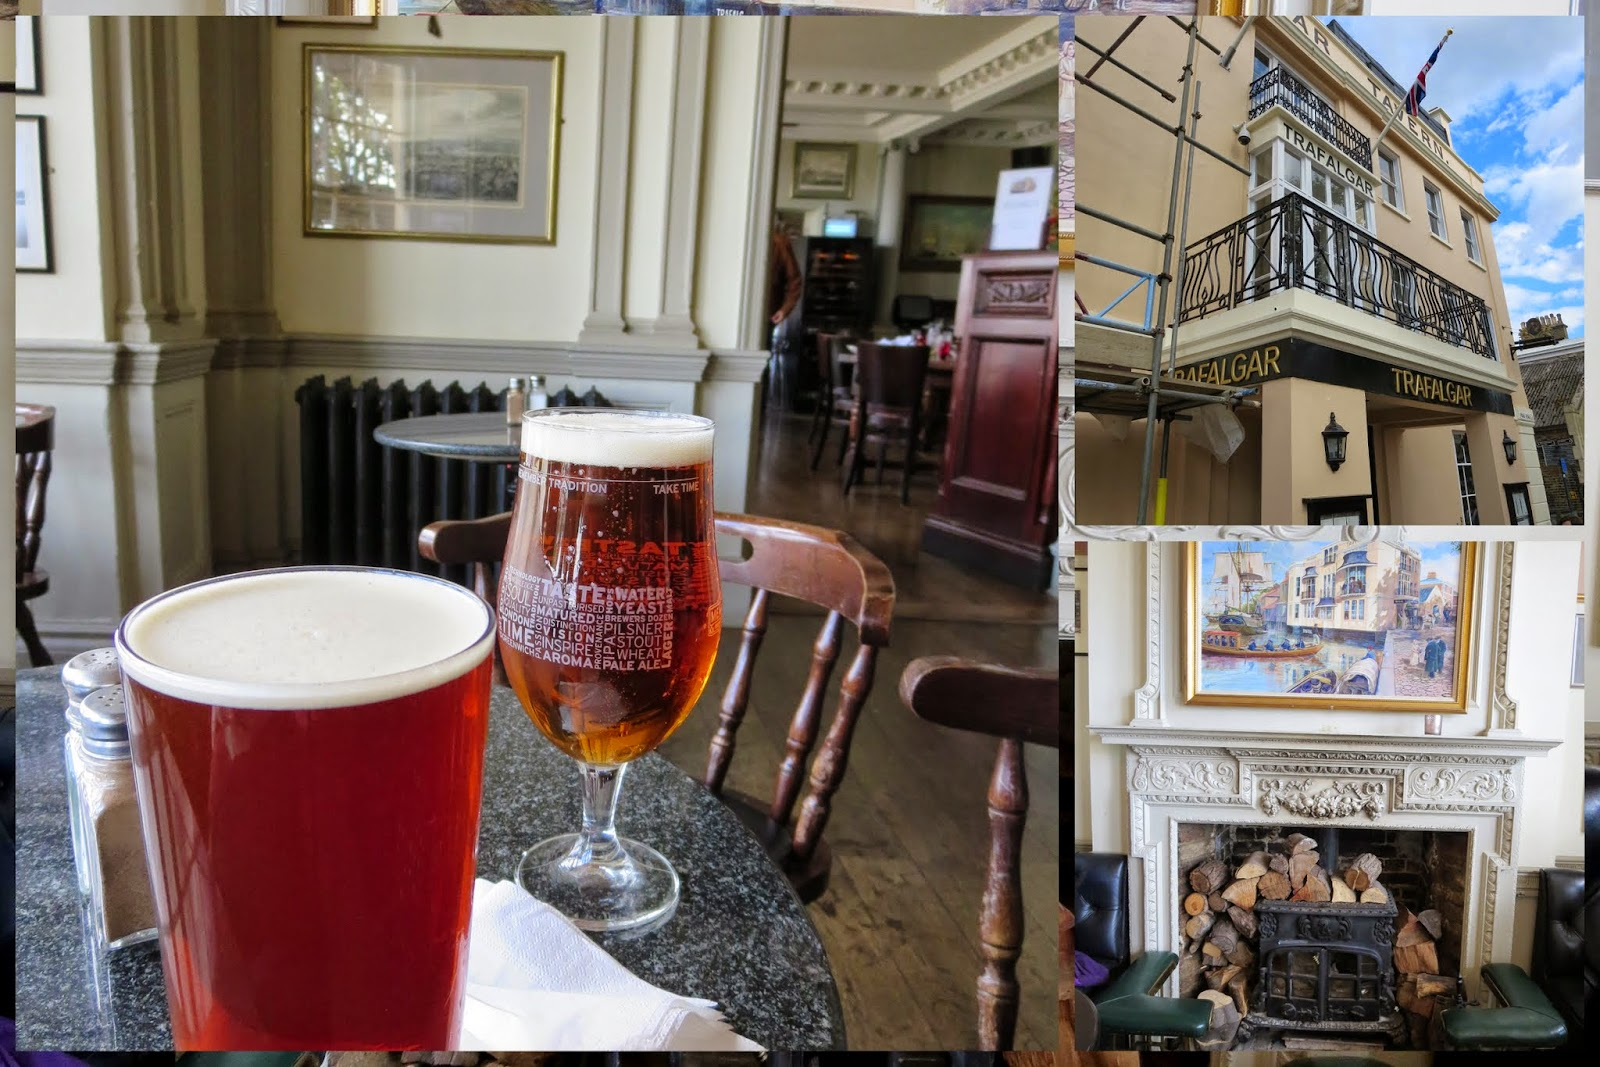 Greenwich Day Trip: Trafalgar Tavern